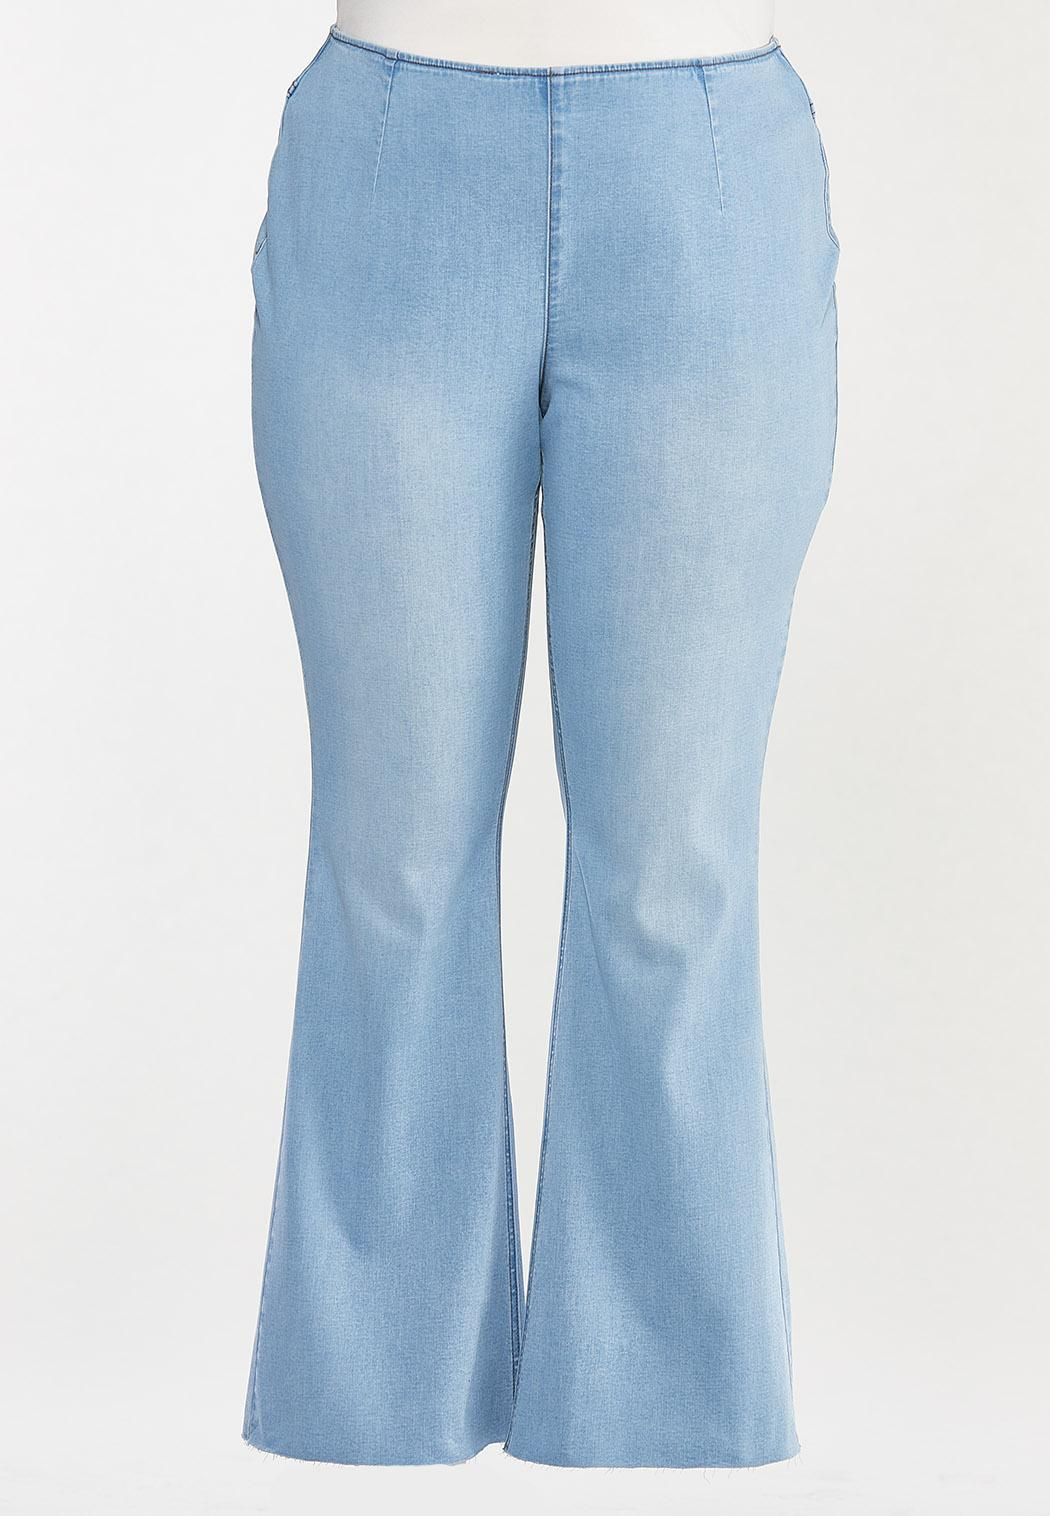 Plus Size Pull-On Flare Jeans